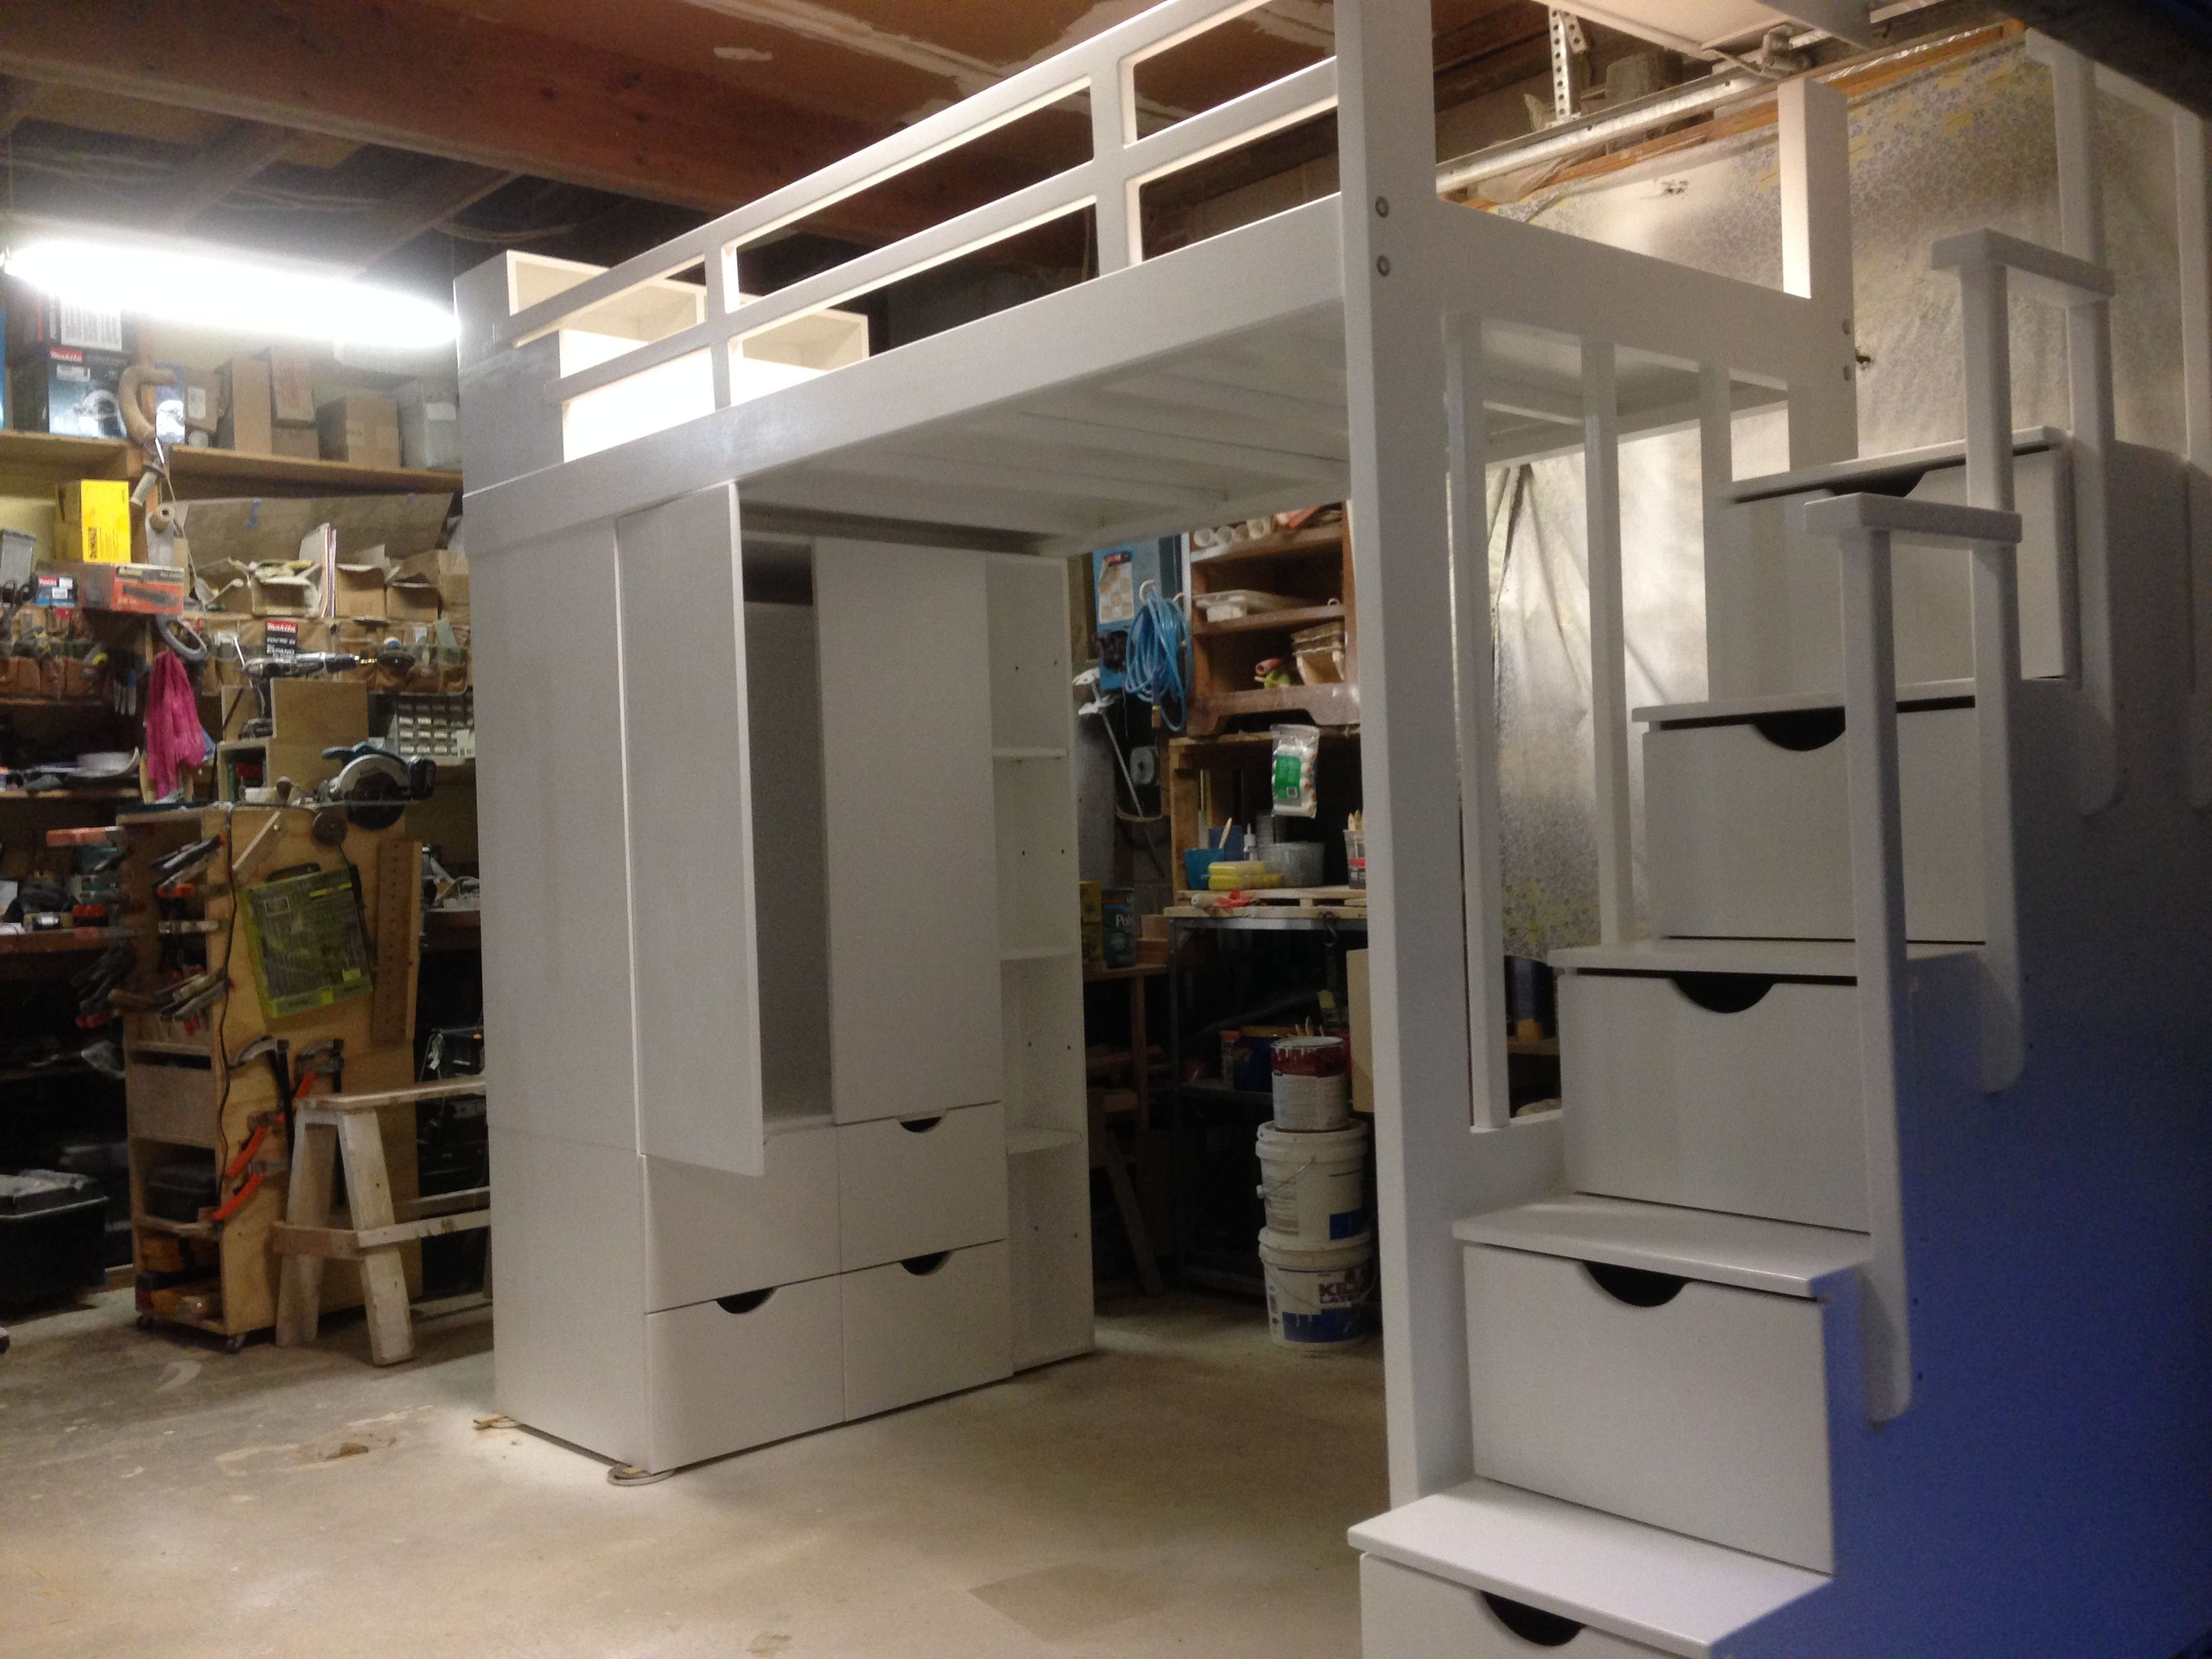 Wardrobe Loft Bed With Storage Steps Loft Bed Plans Diy Loft Bed Loft Beds For Small Rooms